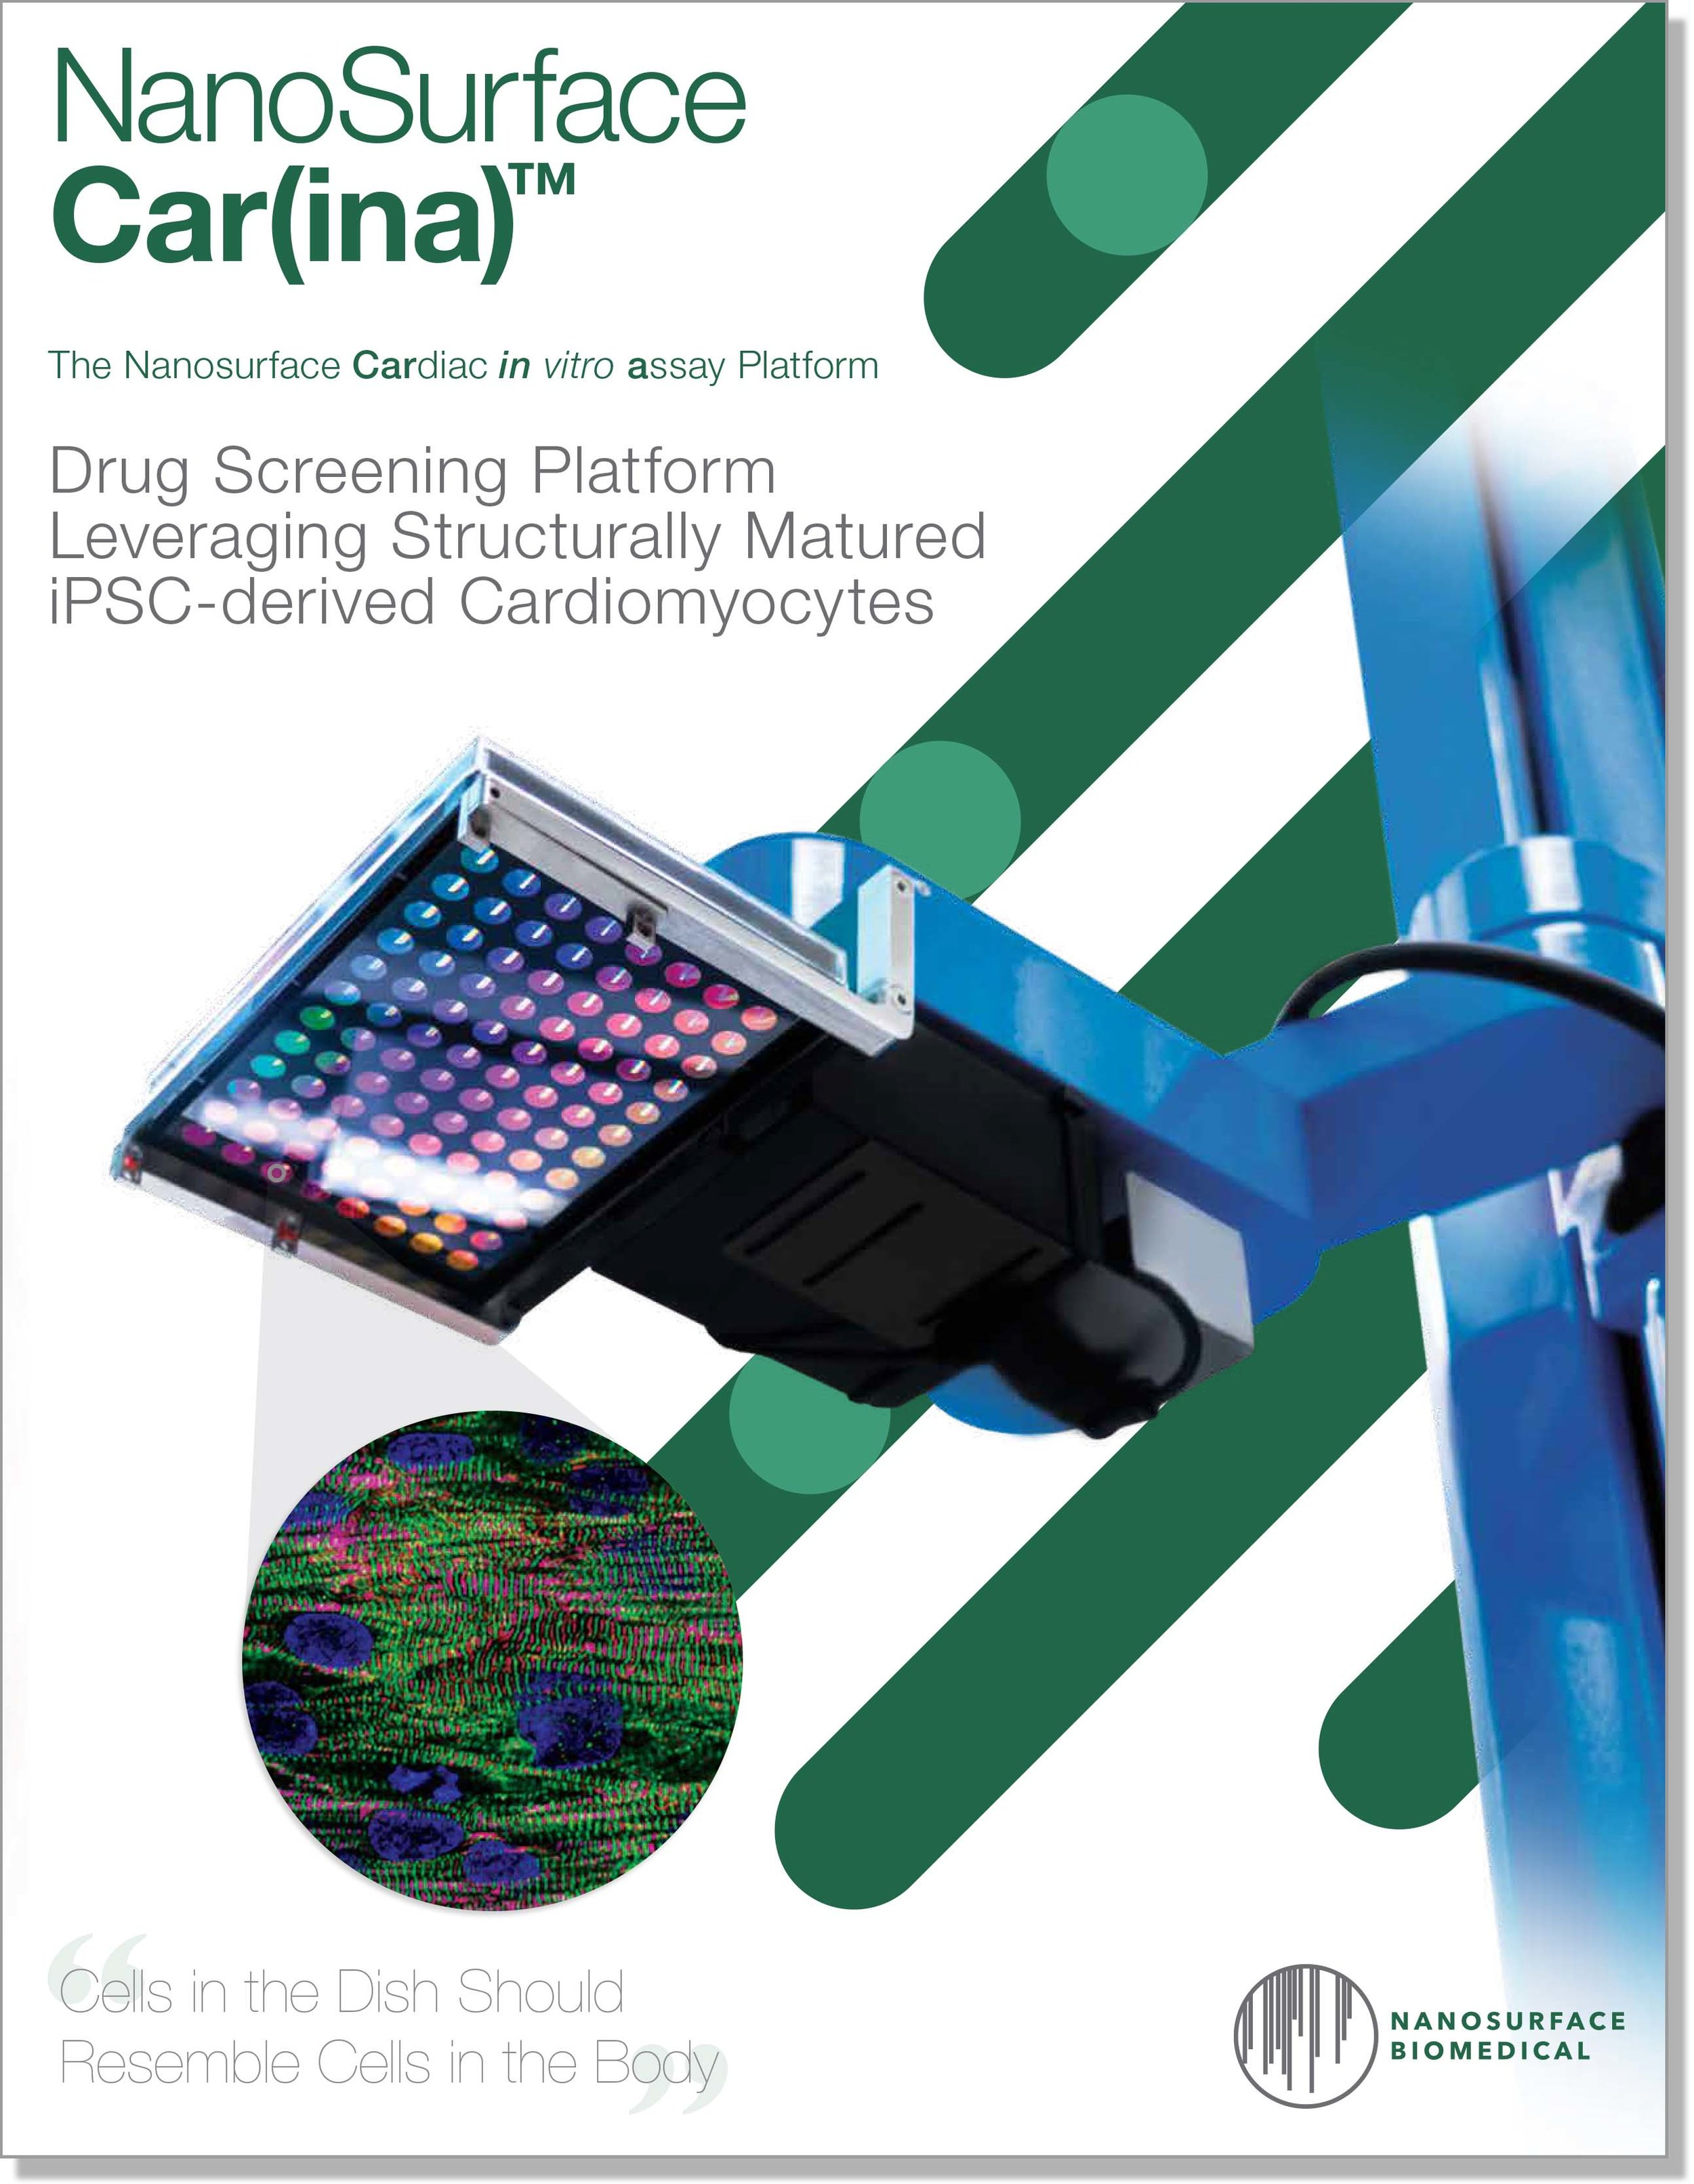 NanoSurface Car(ina) Platform Launch Brochure - Download the NanoSurface Car(ina) platform brochure for information about the platform in a convenient PDF format. For additional information, please contact support@nanosurfacebio.com.